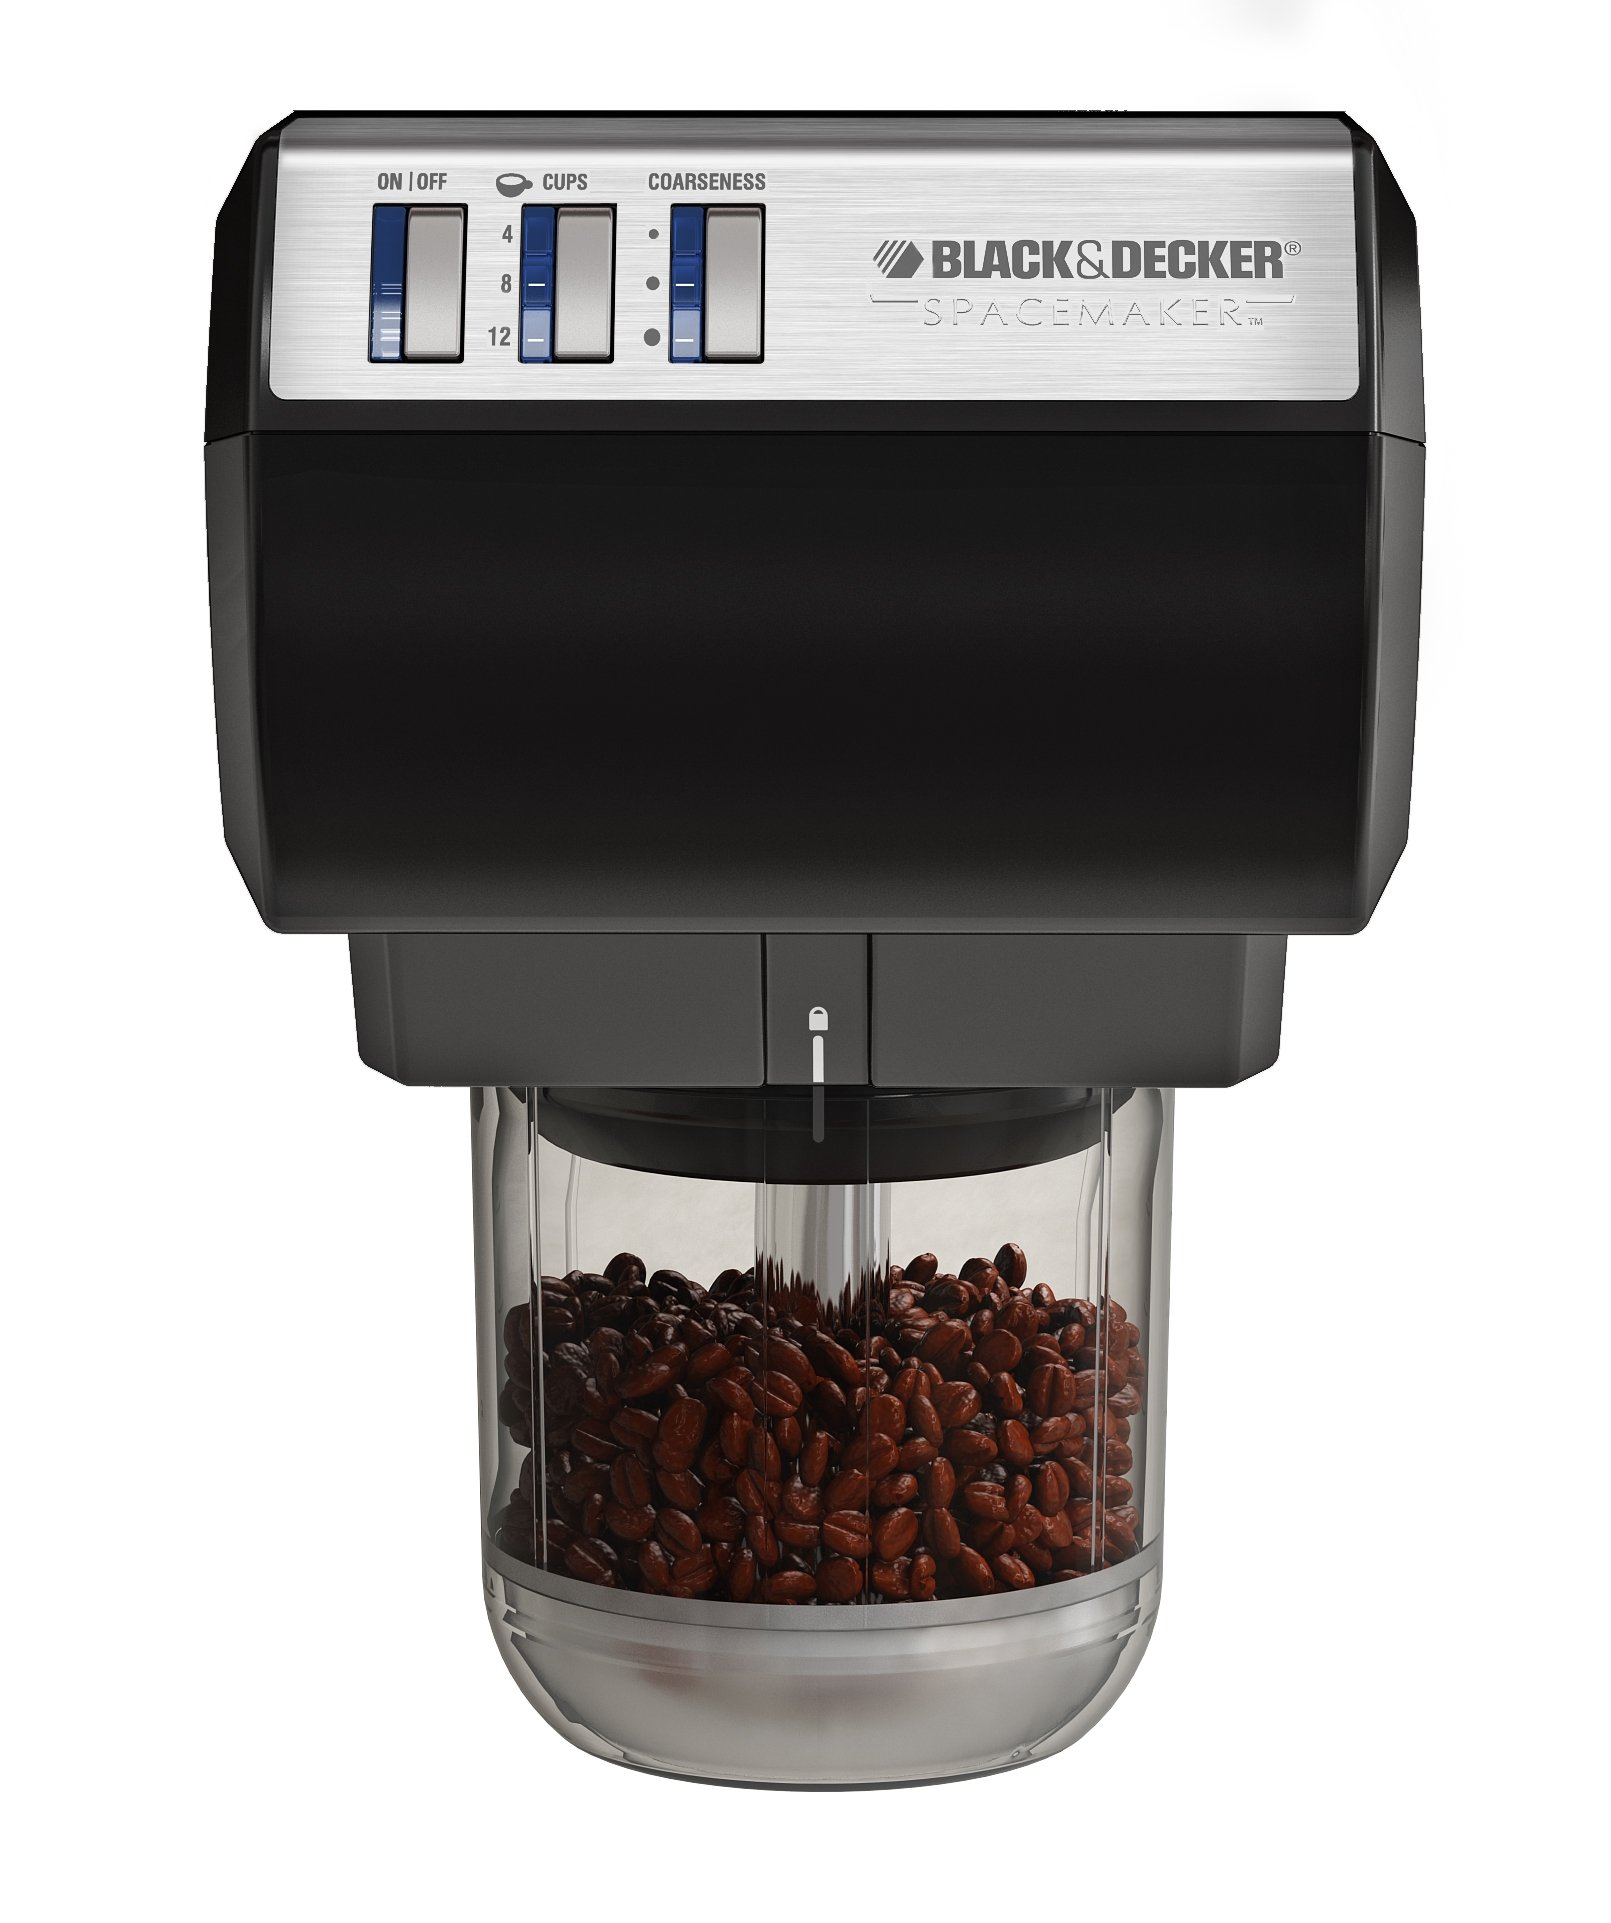 Black & Decker CG700 Spacemaker Coffee Grinder & Chopper